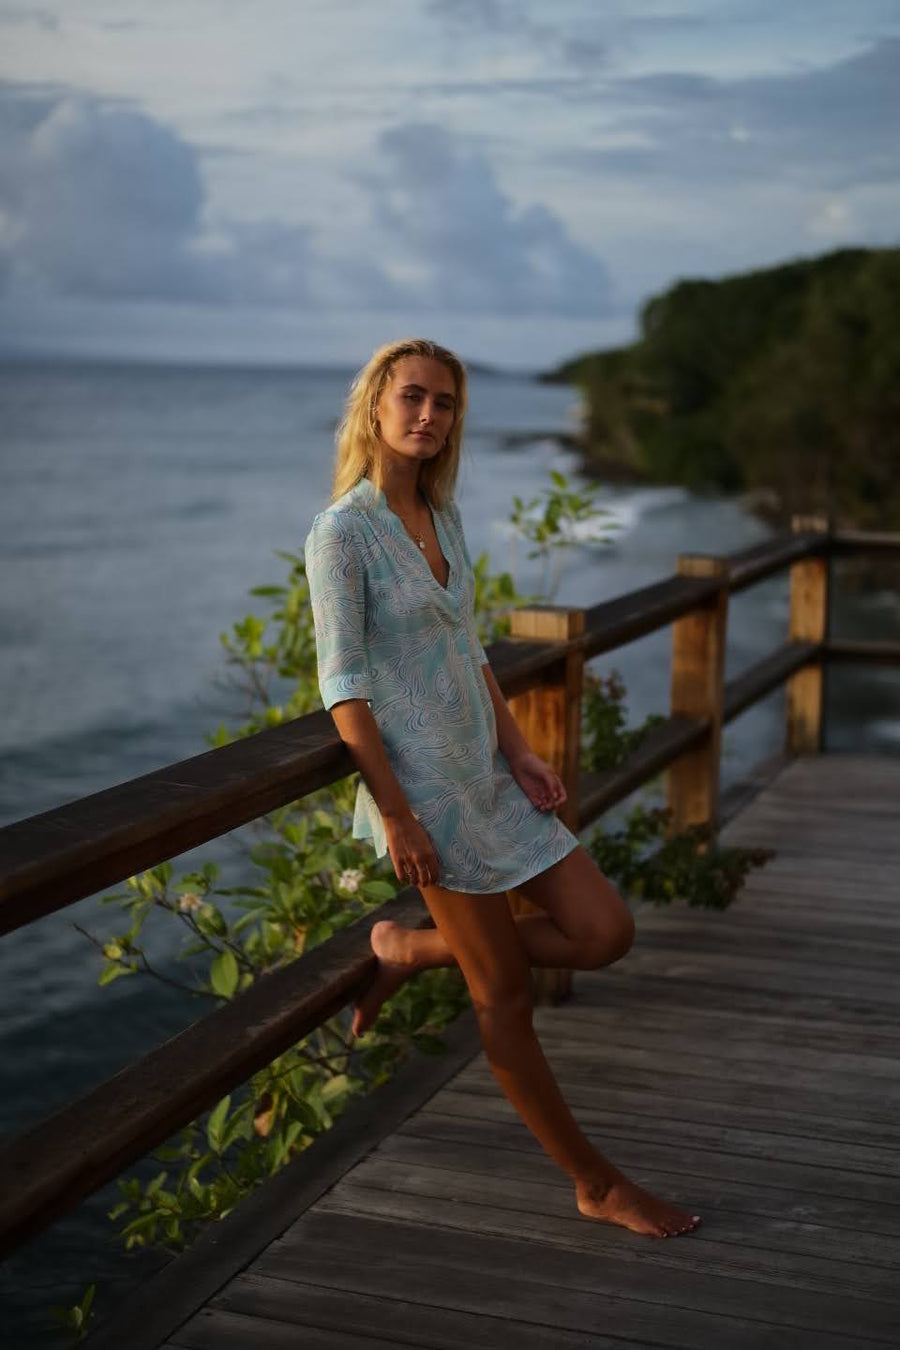 Designer silk Decima dress by Lotty B in Whale turquoise print, luxury style Heron Bay Mustique